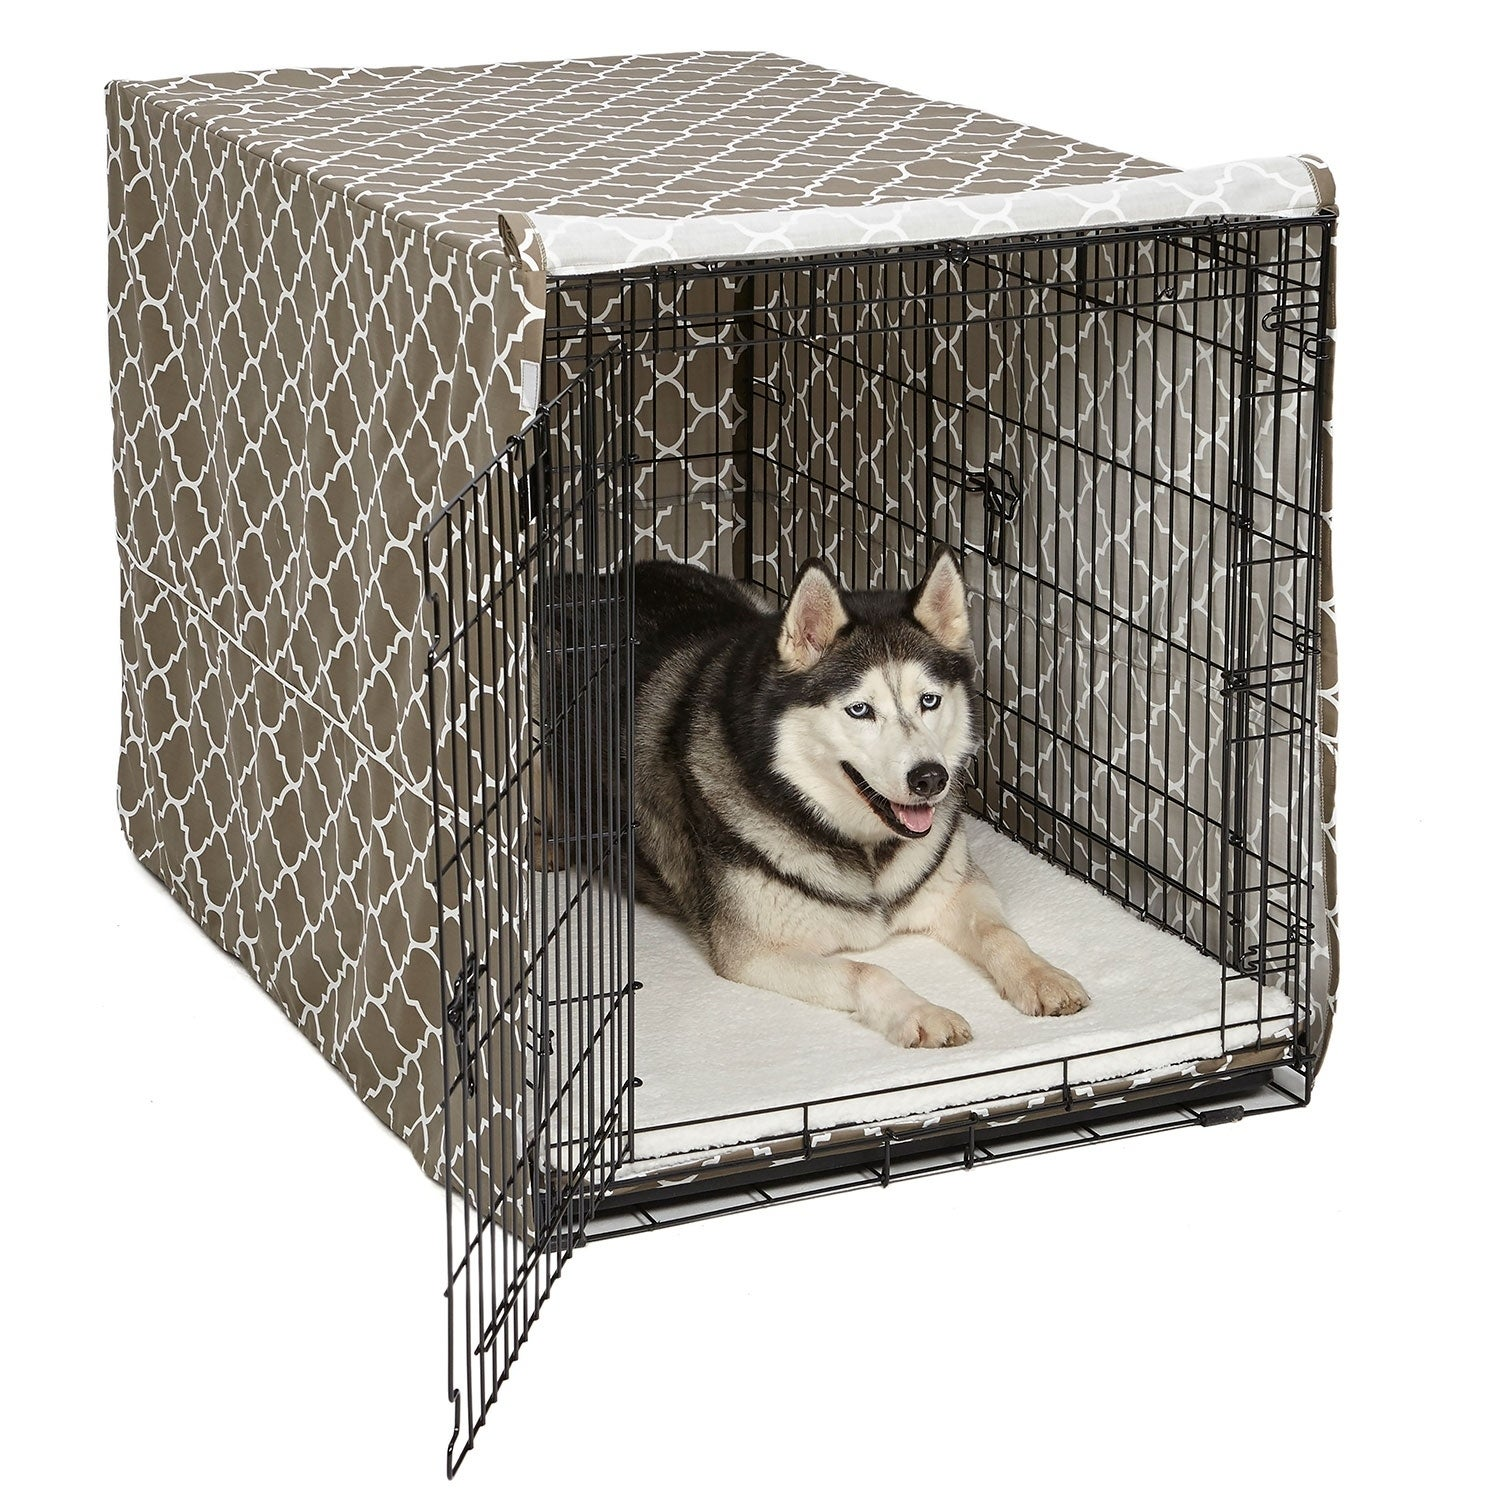 QuietTime Defender Covella Dog Crate Cover (grey - 24 inch crate)